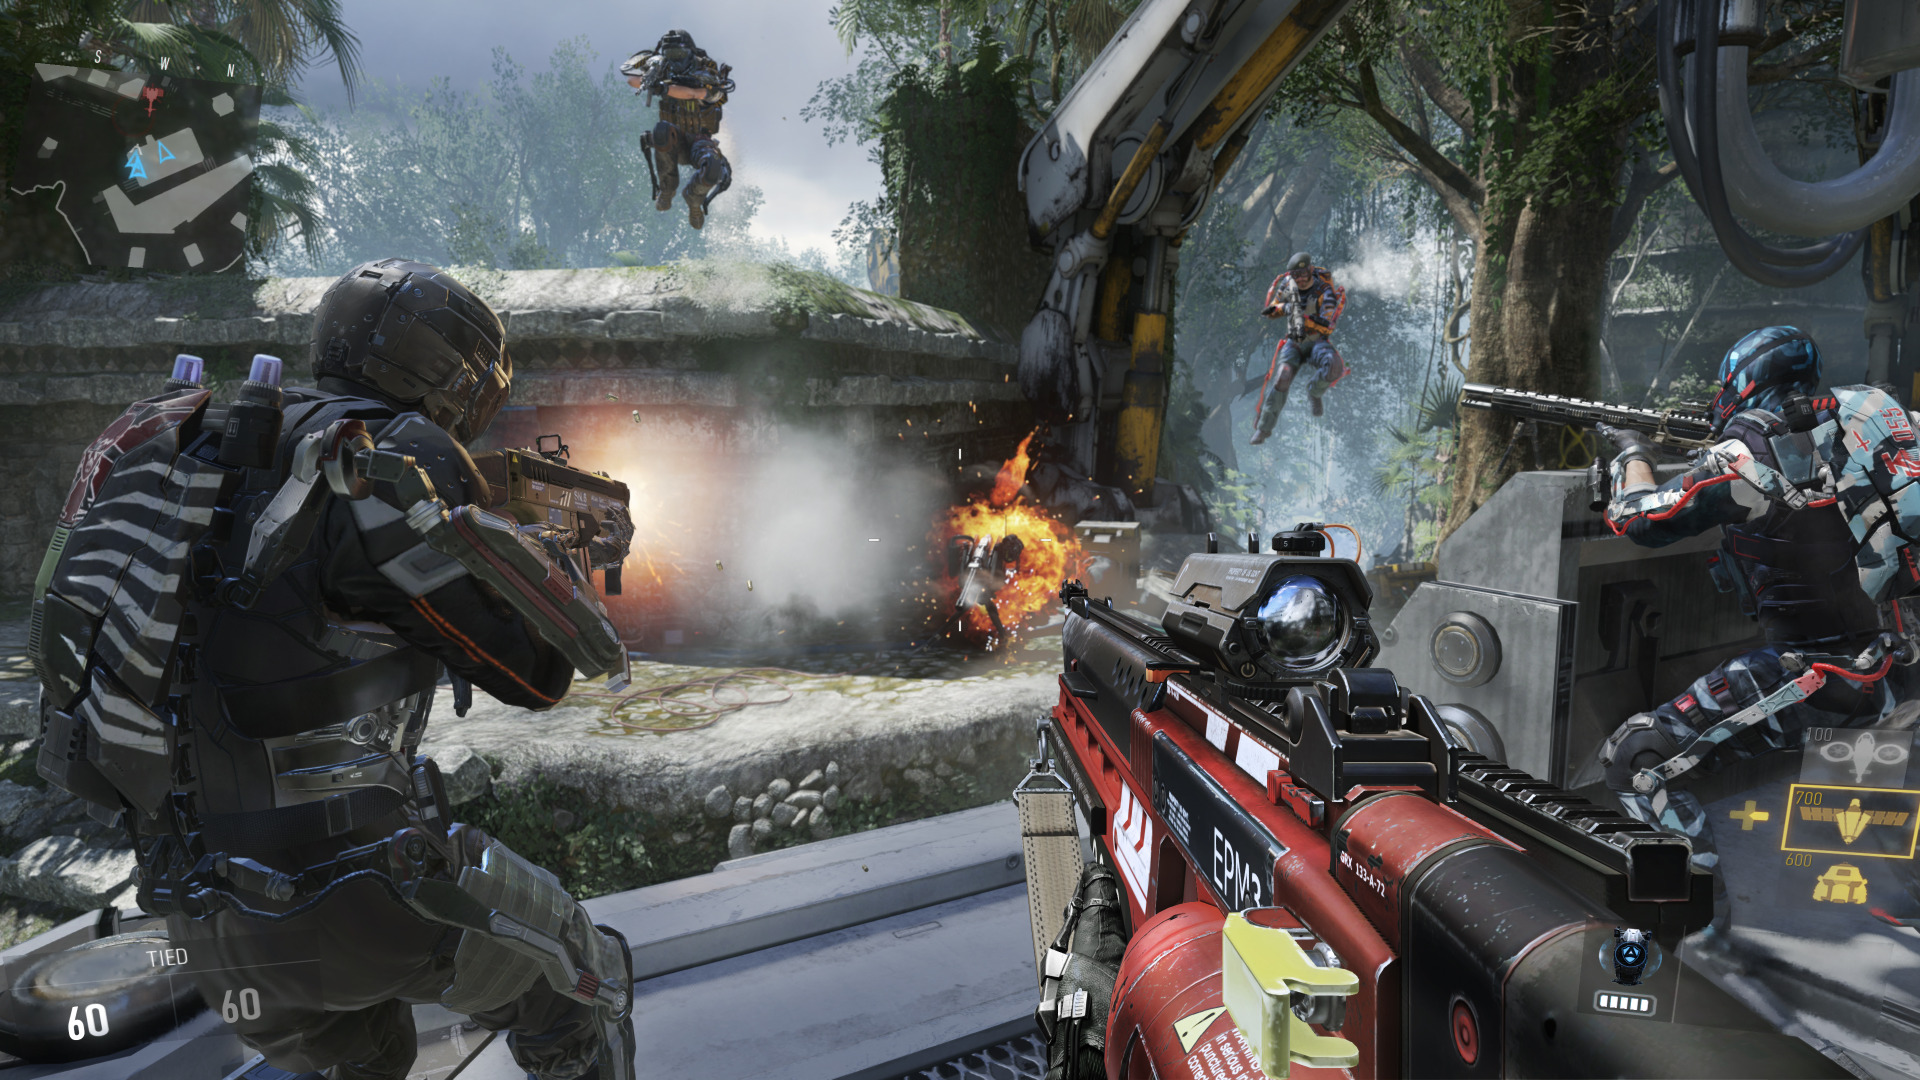 El Multijugador De Call Of Duty Advanced Warfare Disponible Gratis